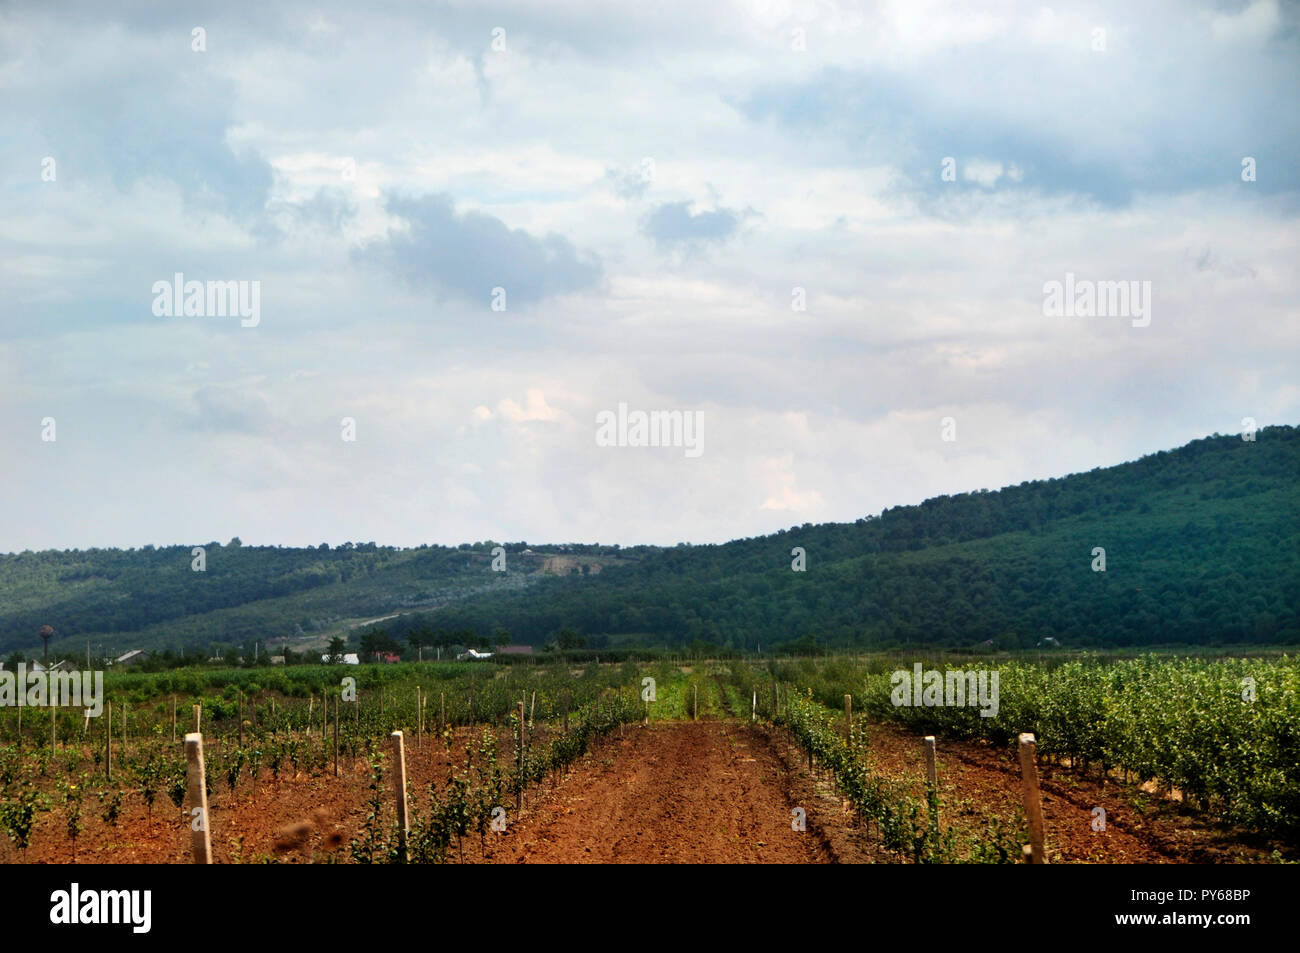 Eco vineyards located on a protected area in Moldova, Eastern Europe - Stock Image